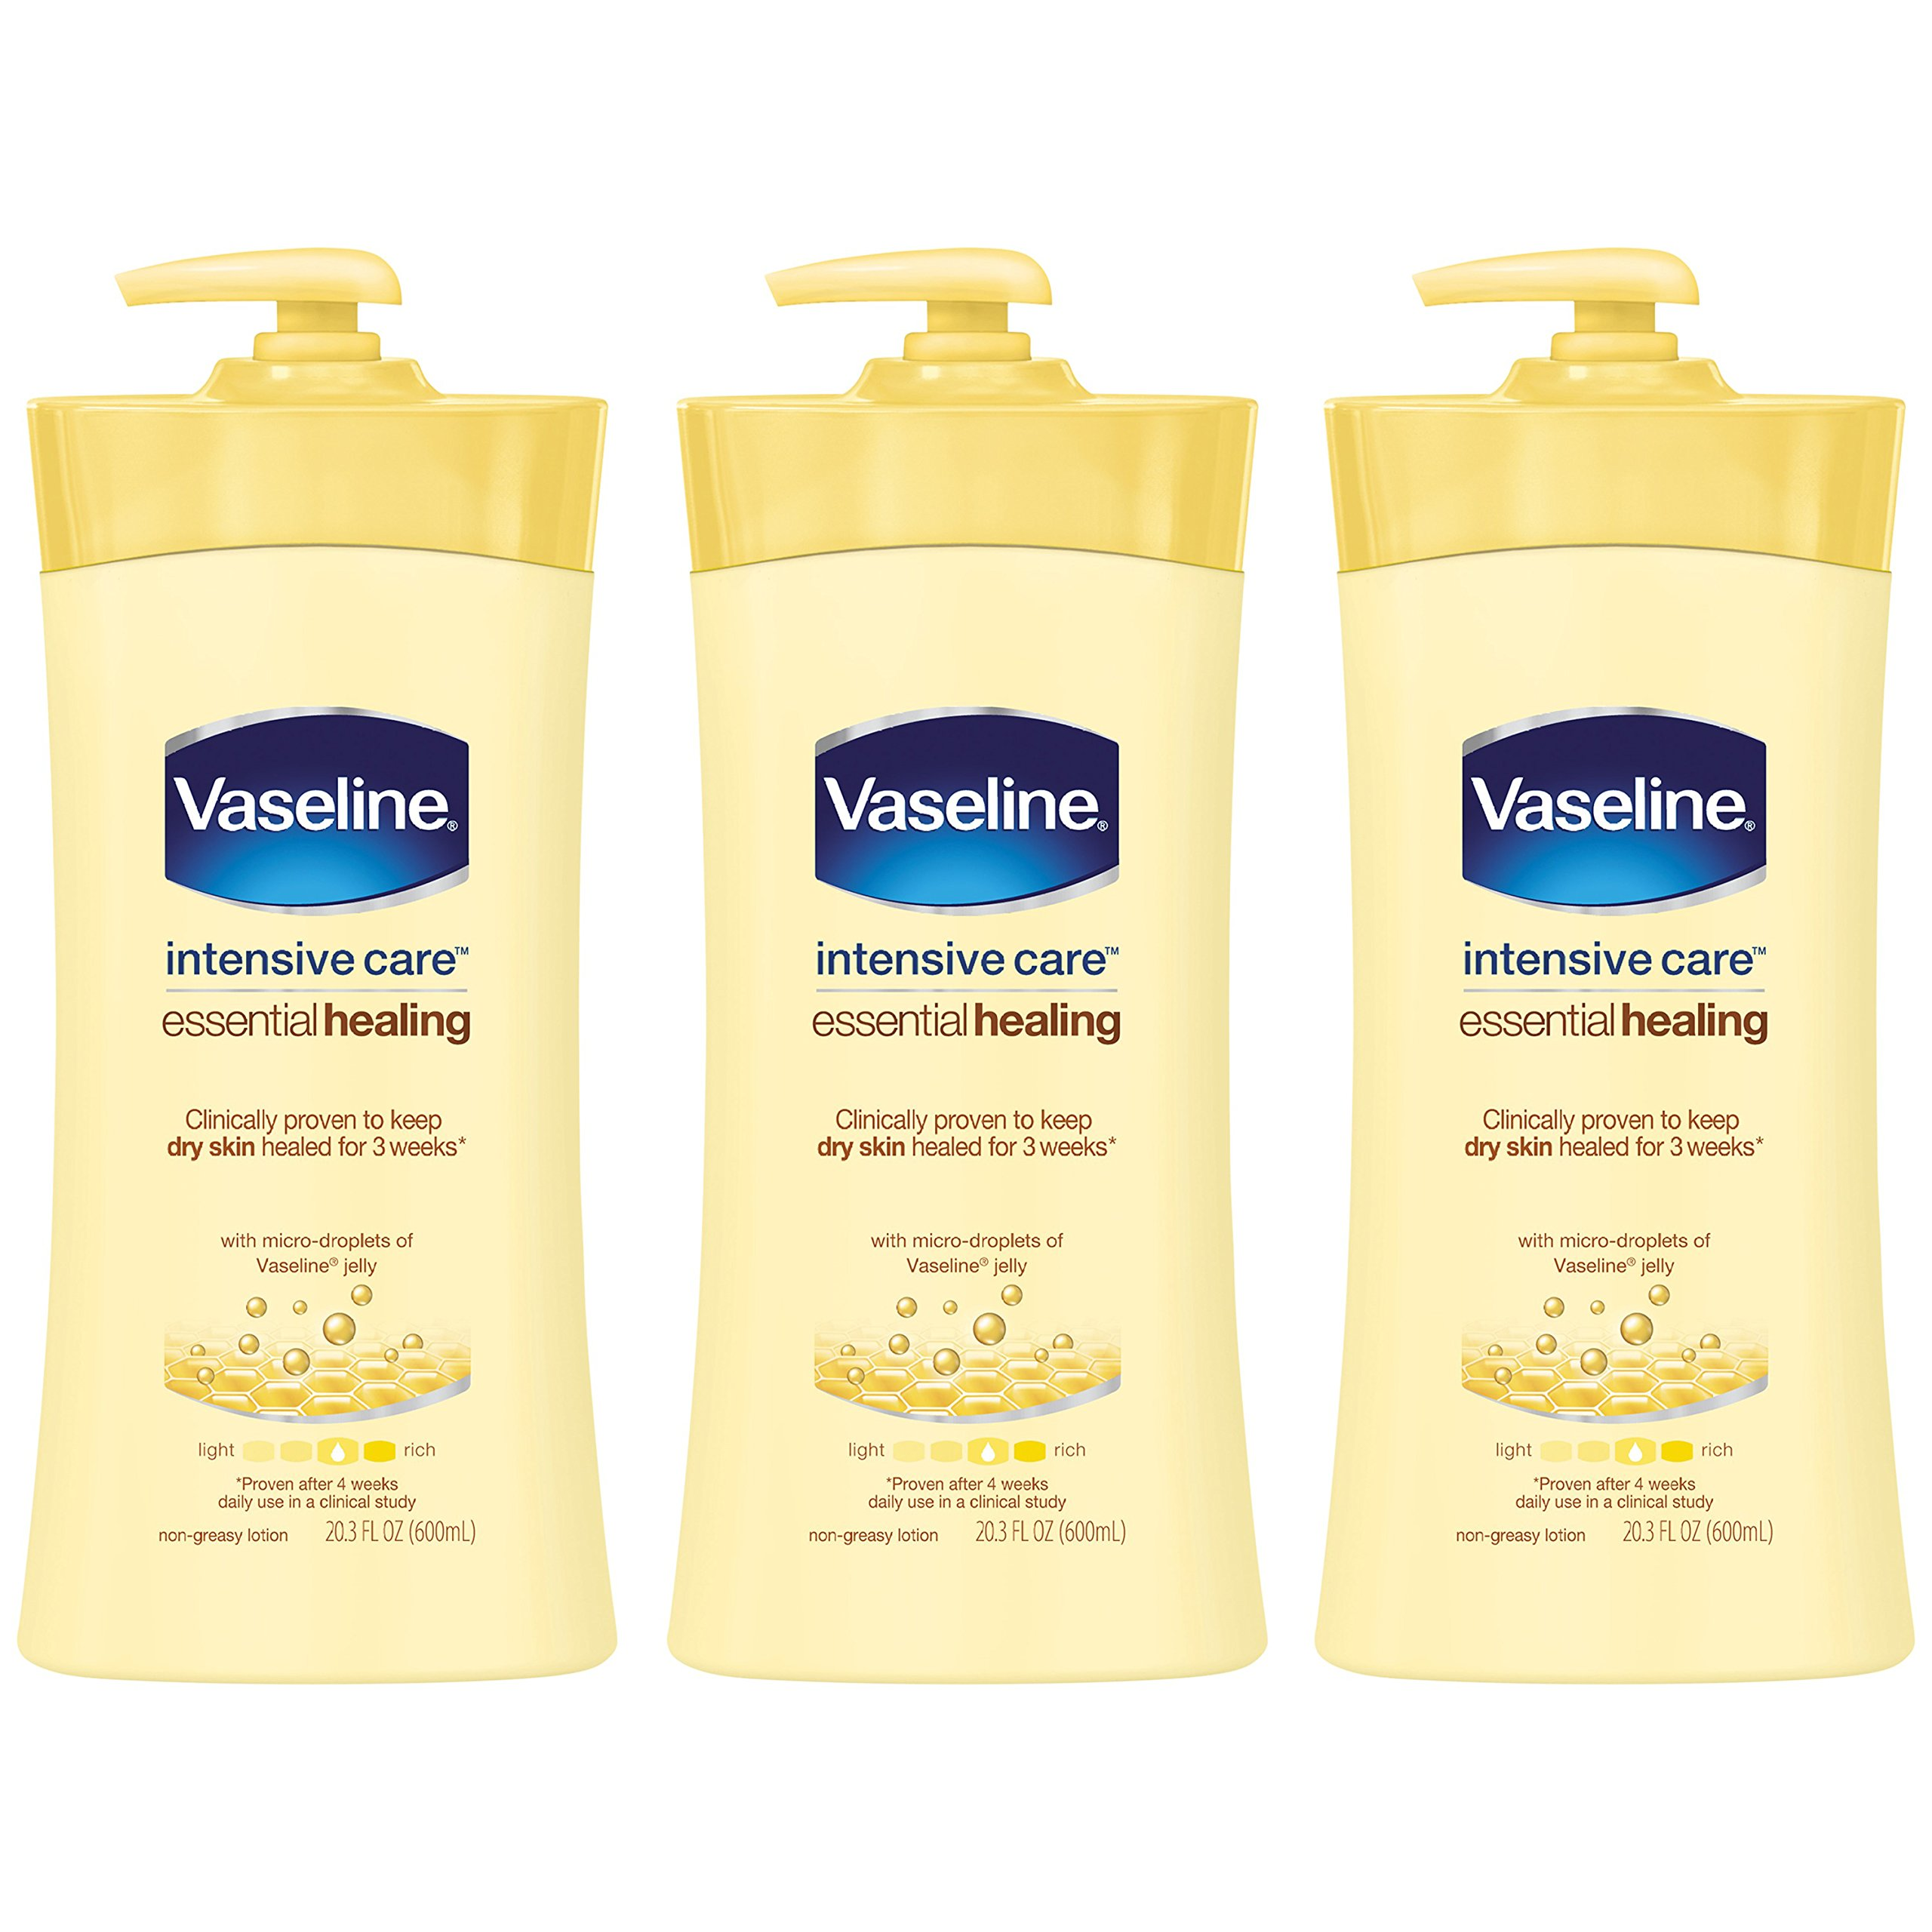 Vaseline Intensive Care Body Lotion, Essential Healing, 20.3 oz, 3 ct